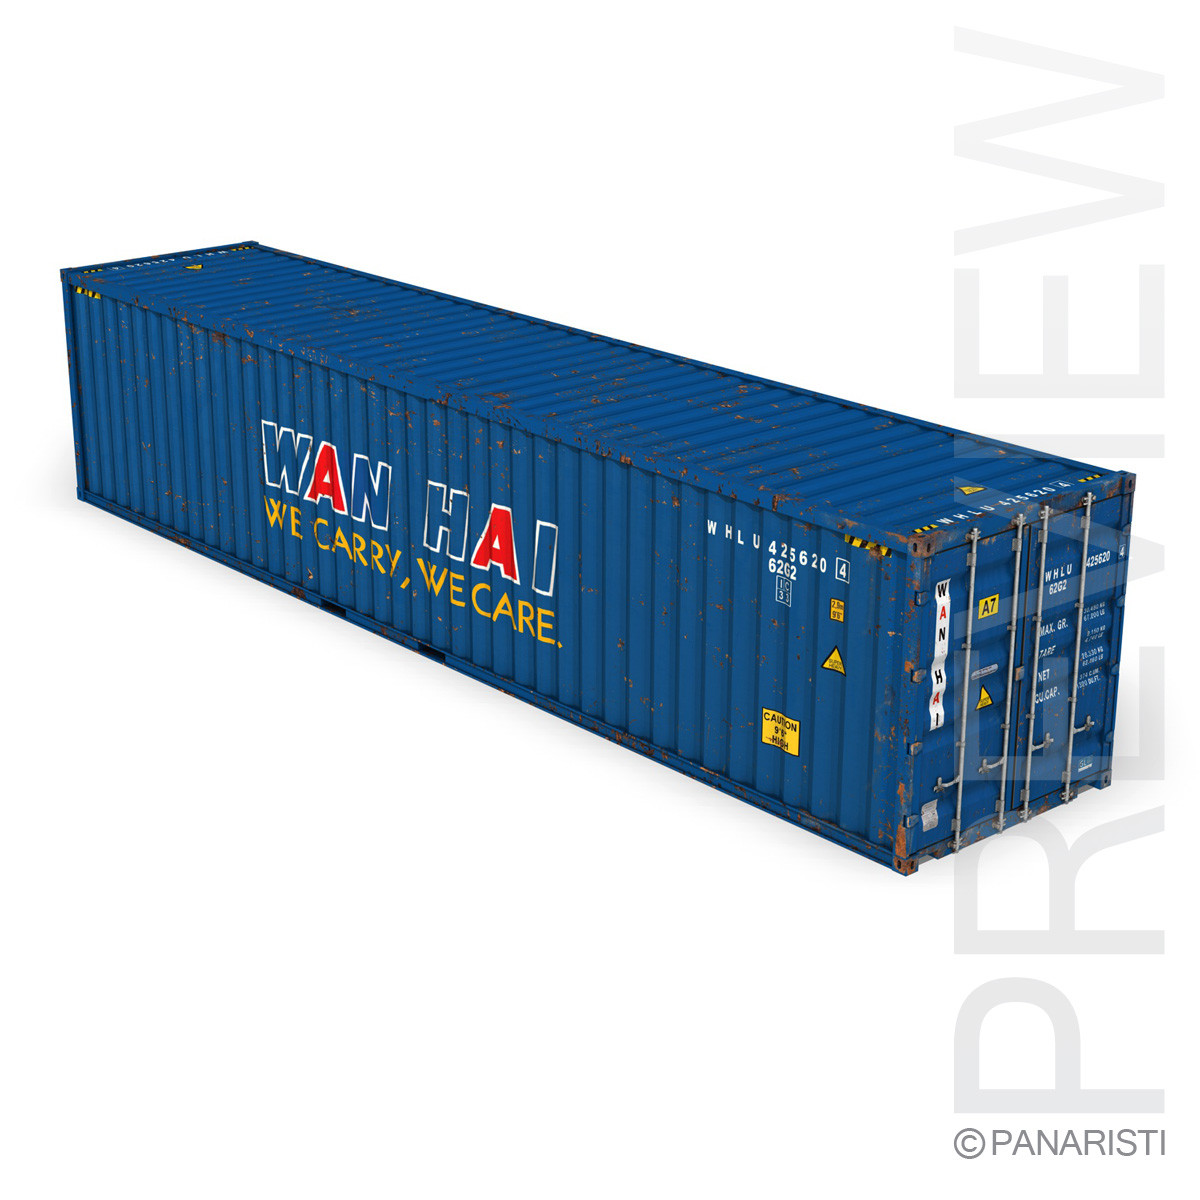 40ft Shipping Container - Wan Hai